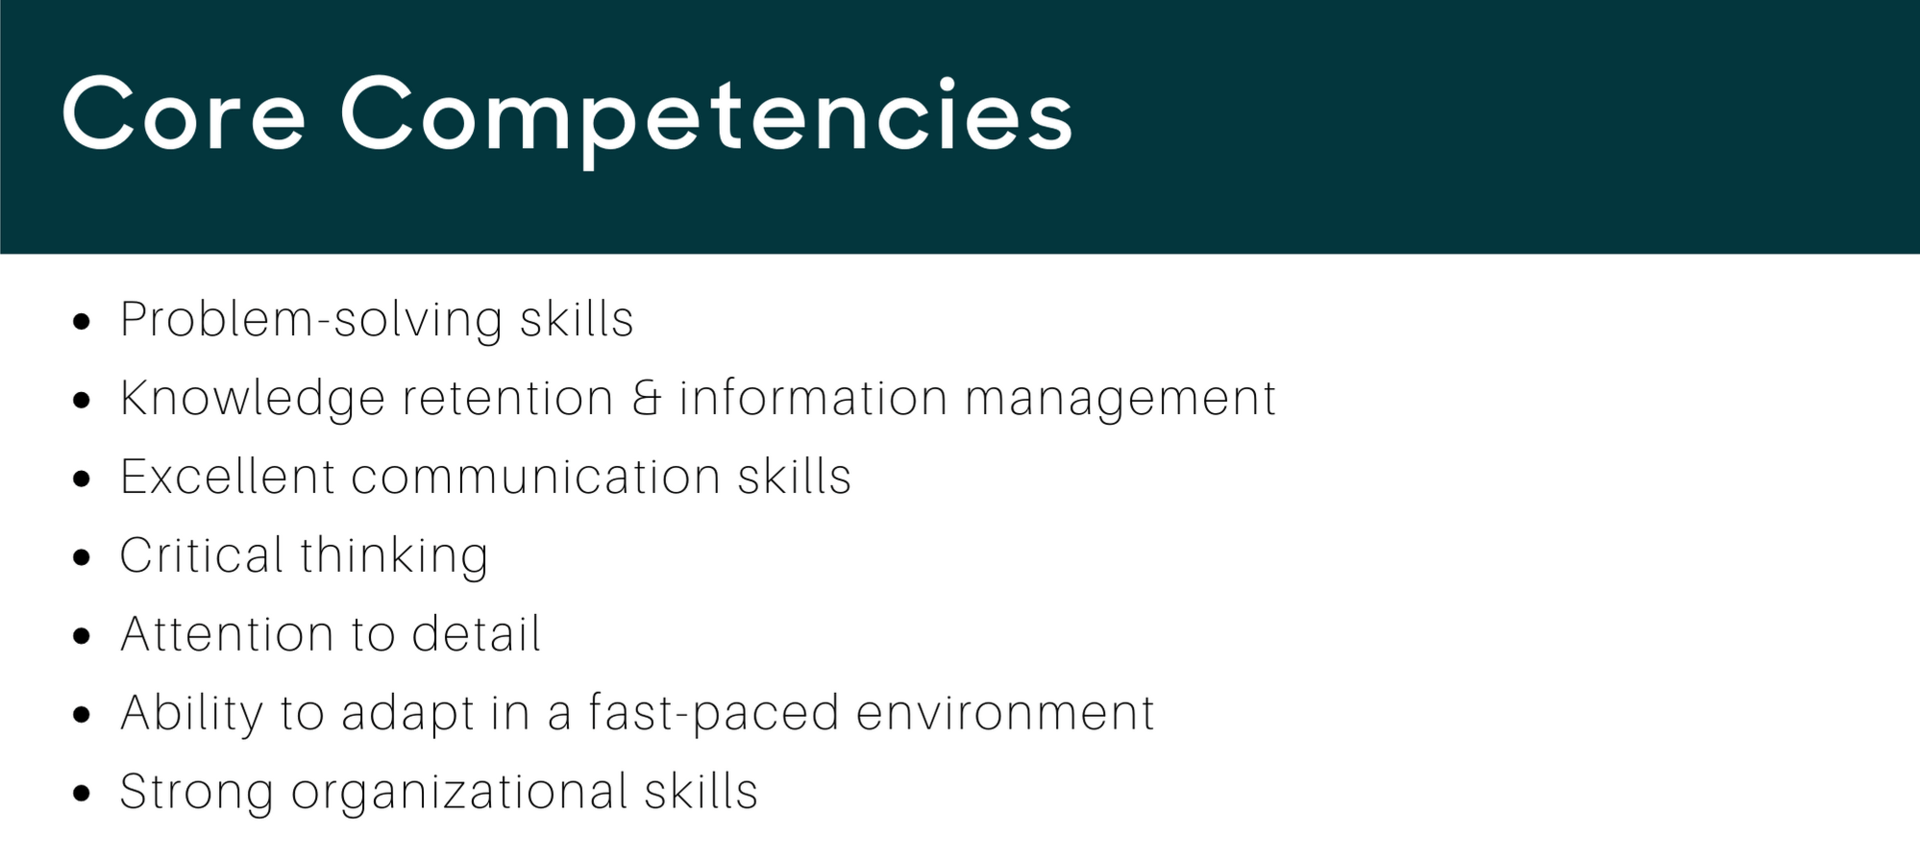 Call Center Resume Core Competencies